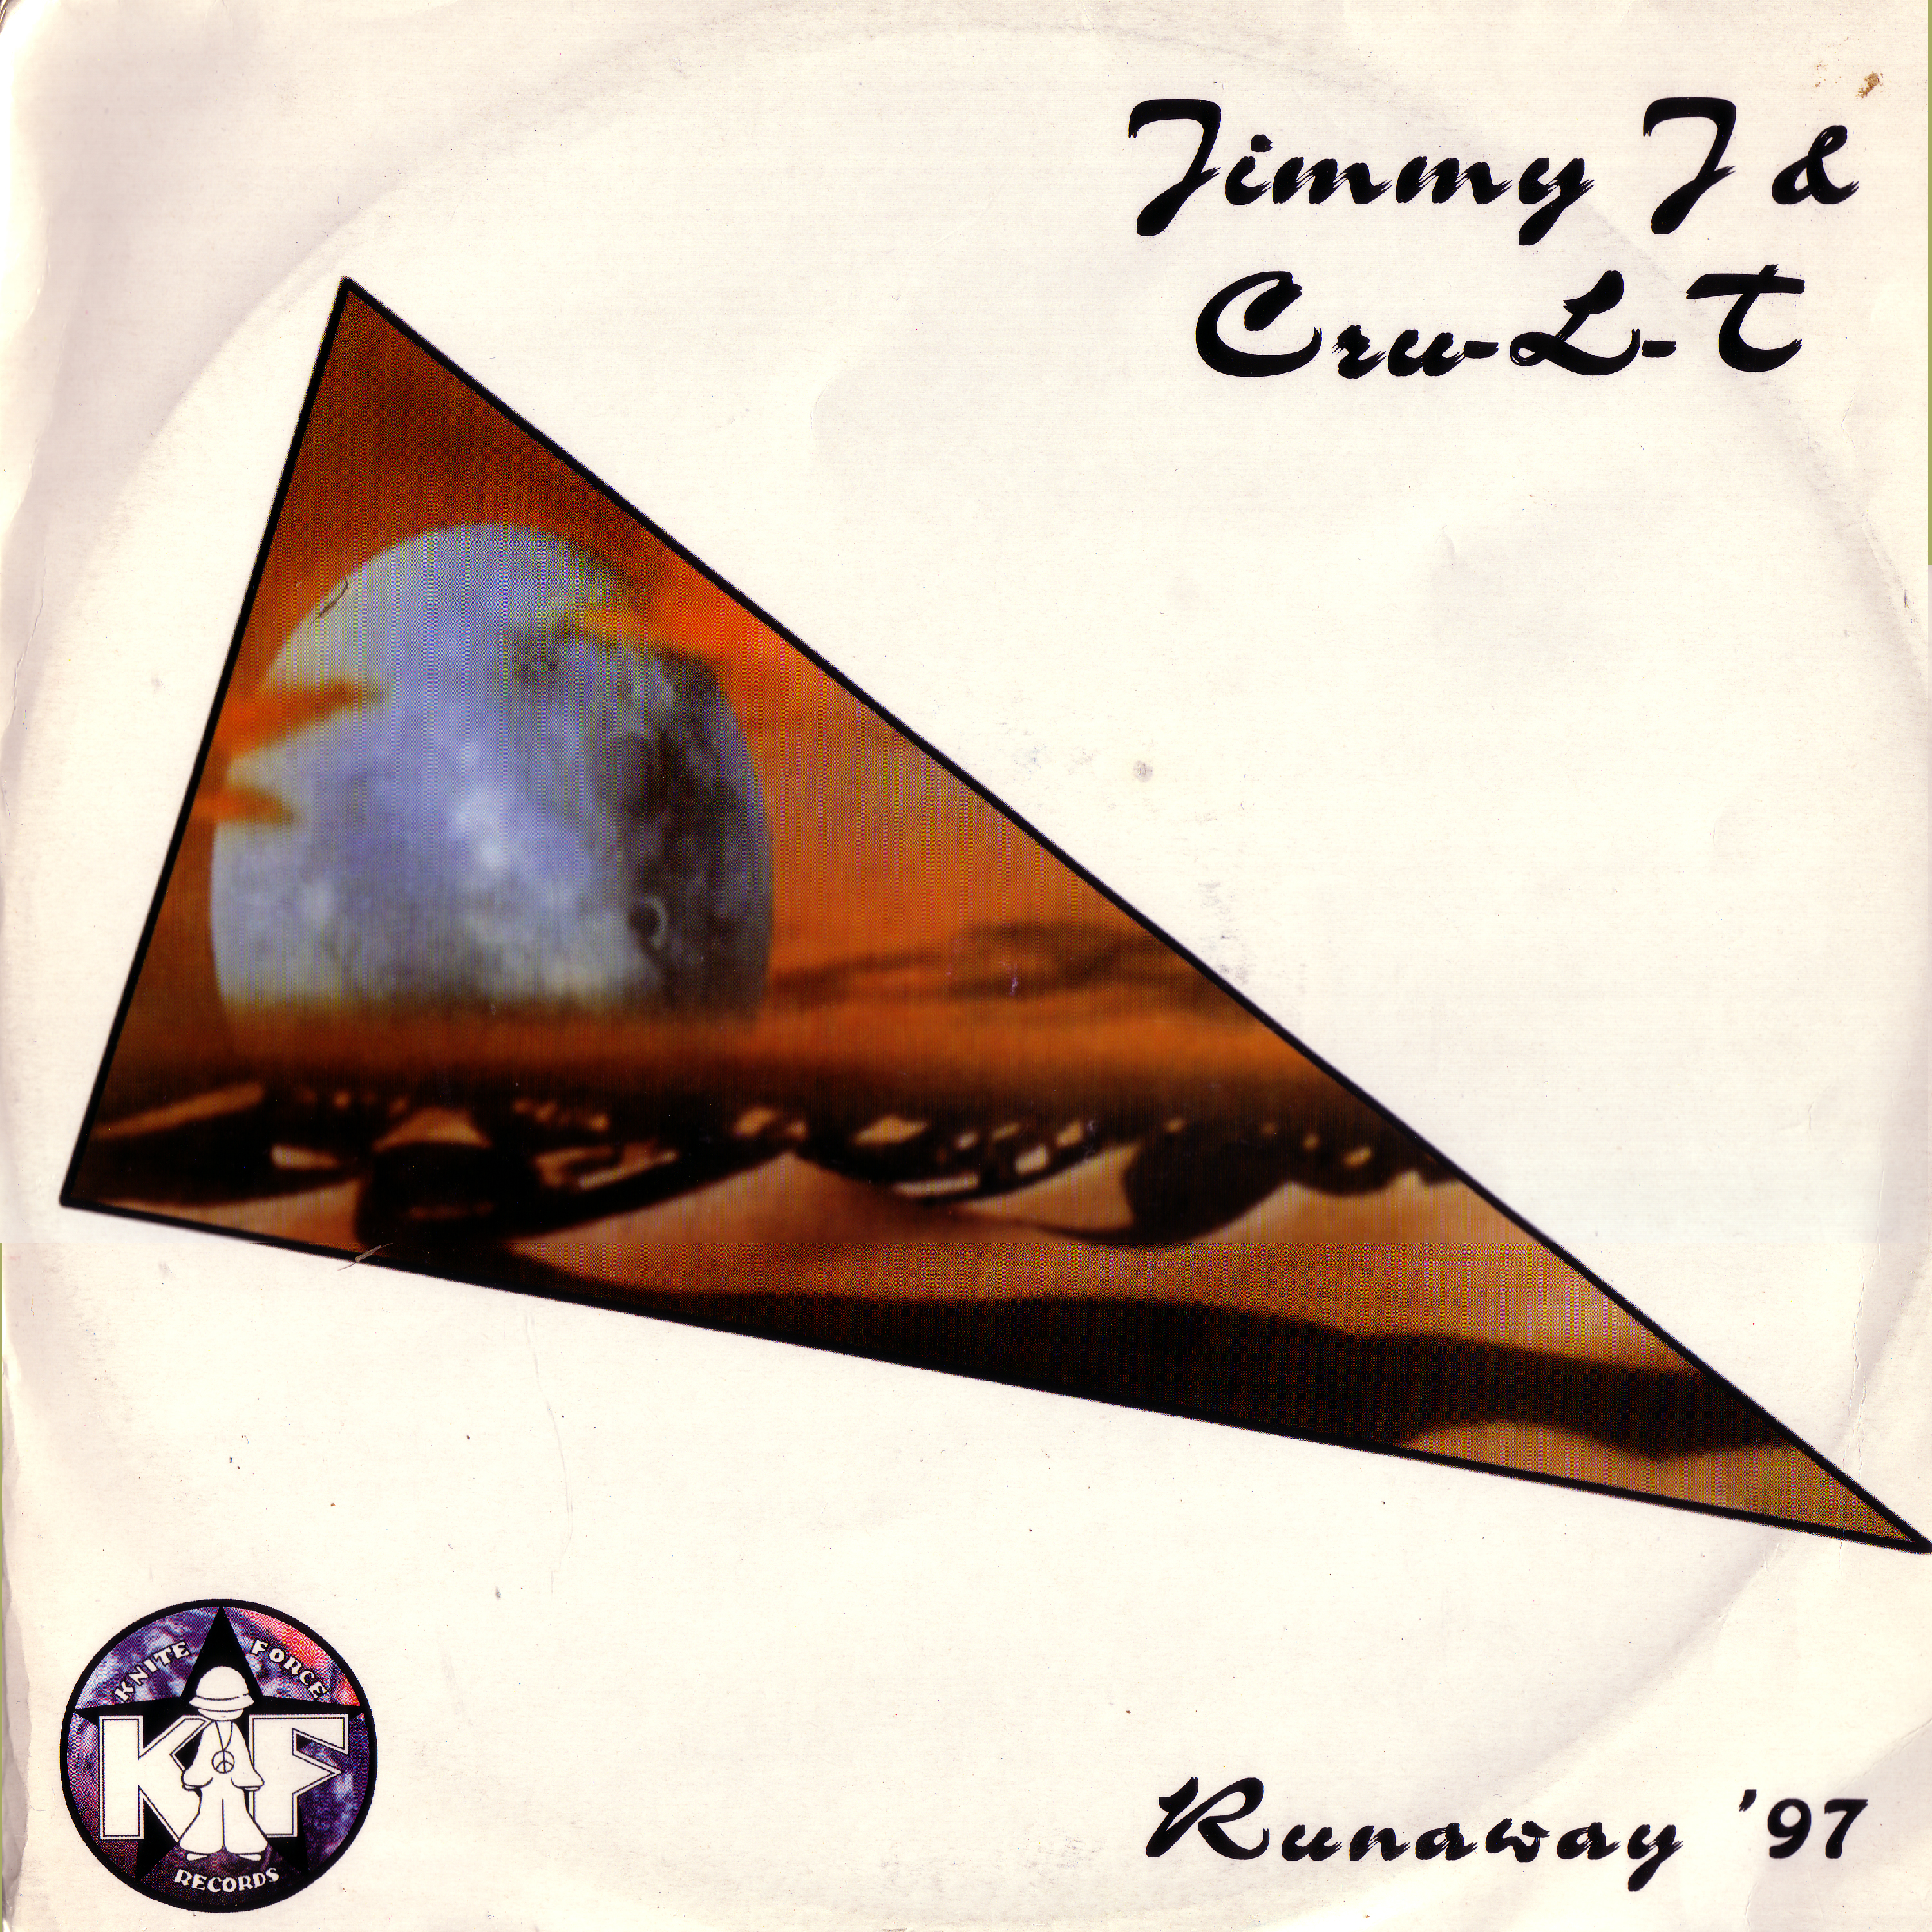 [KF048] Jimmy J & Cru-L-T - Runaway '97 EP (Digital Only)